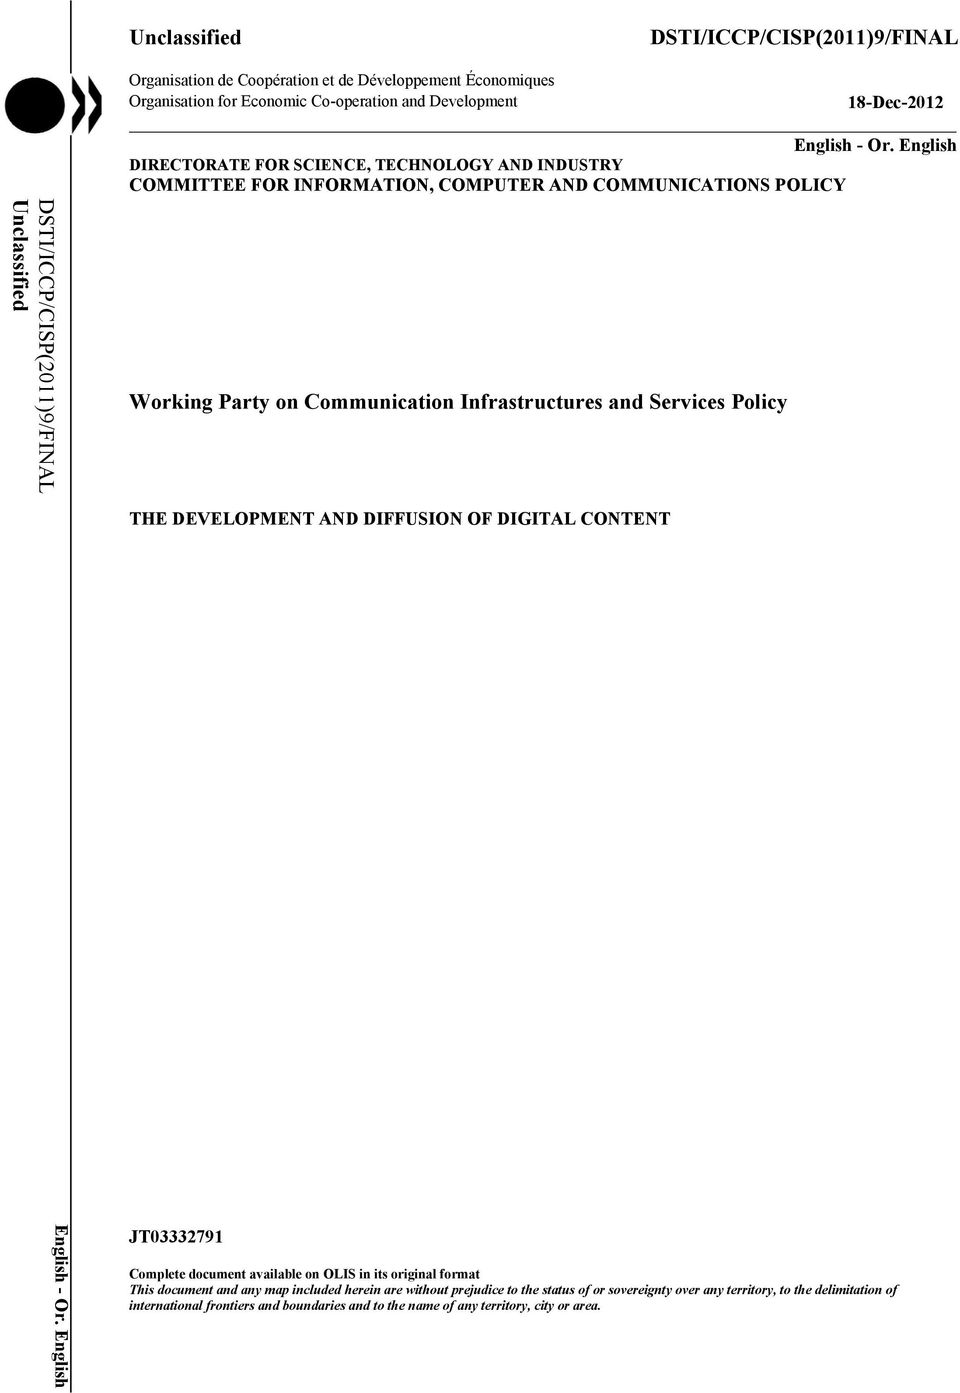 English DIRECTORATE FOR SCIENCE, TECHNOLOGY AND INDUSTRY COMMITTEE FOR INFORMATION, COMPUTER AND COMMUNICATIONS POLICY Working Party on Communication Infrastructures and Services Policy THE